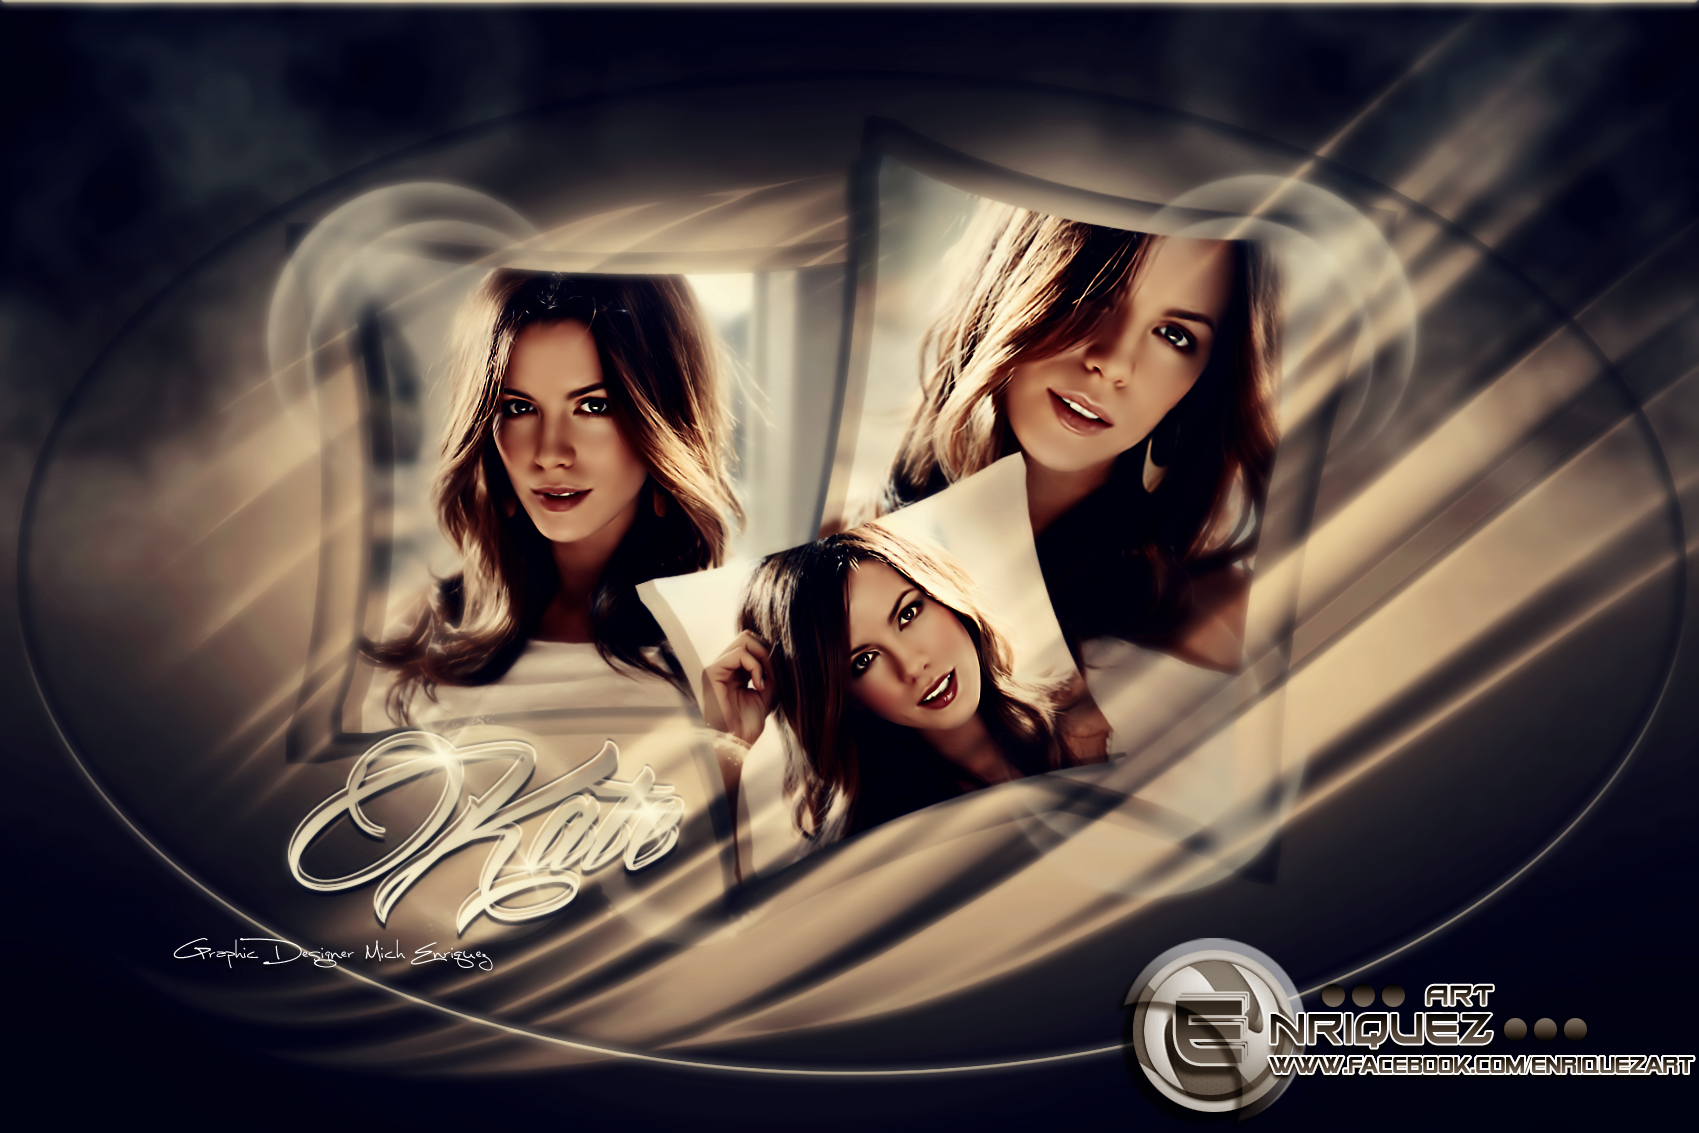 Kate Beckinsale | Wallpaper by EnriquezArt